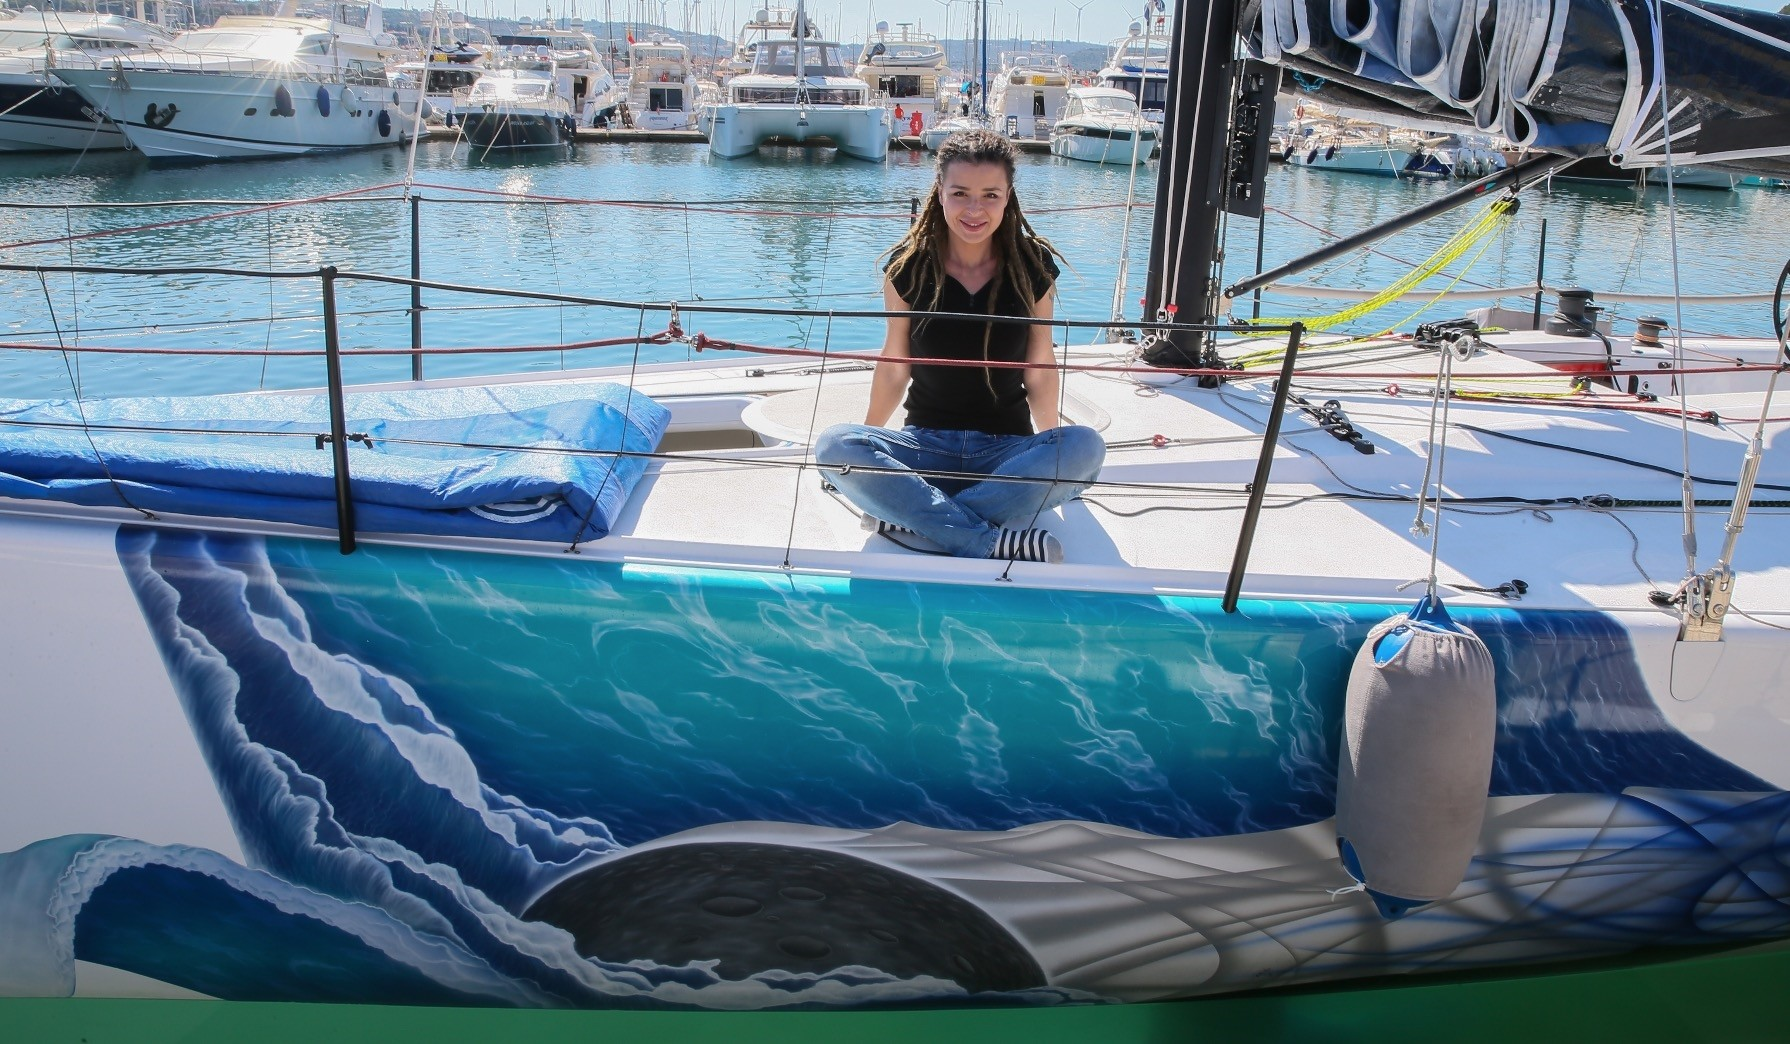 Airbrush artist Evrim Duyar poses on a yacht that she decorated.